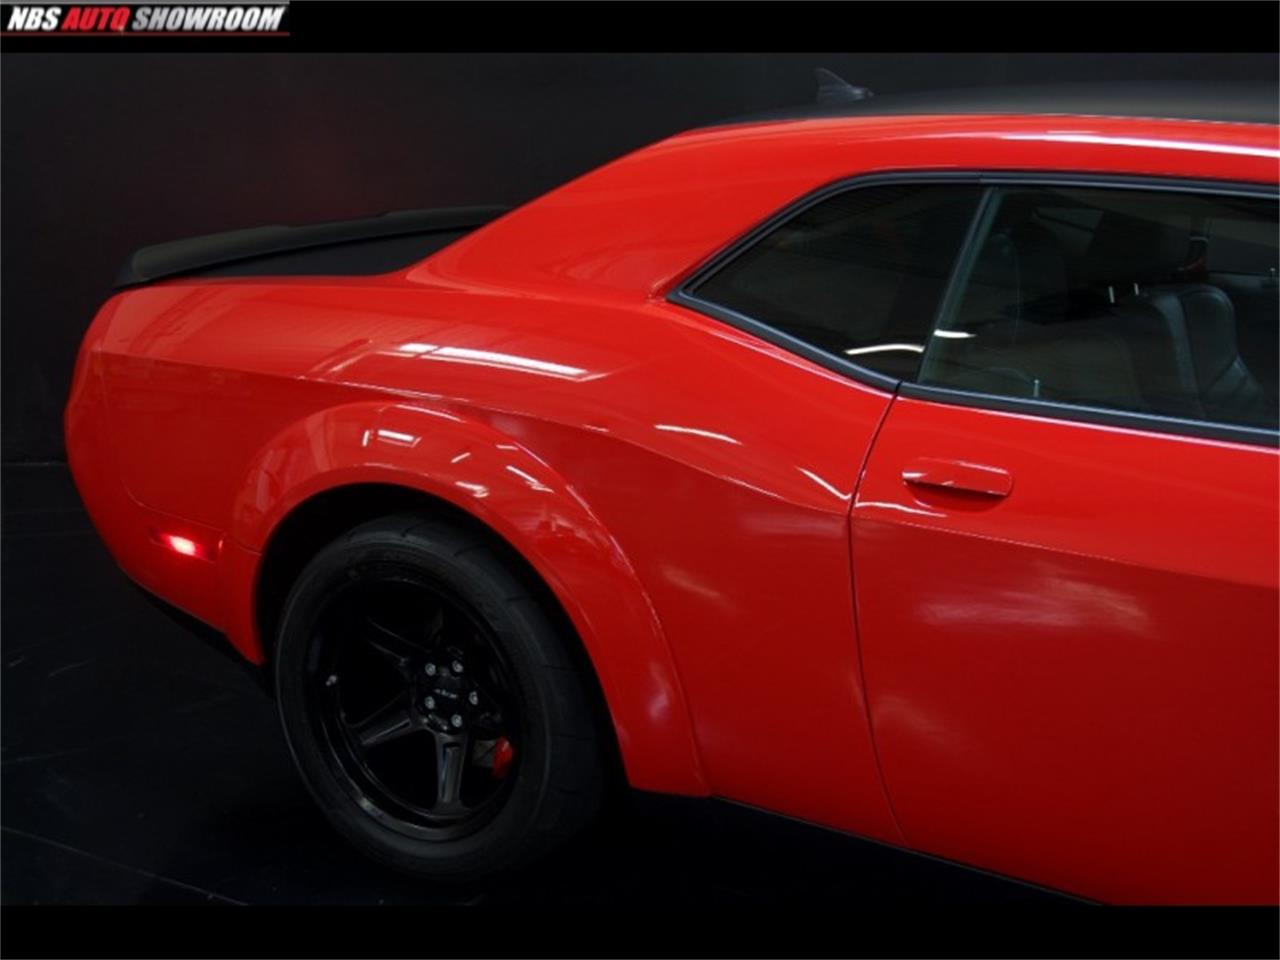 2018 Dodge Challenger (CC-1201860) for sale in Milpitas, California